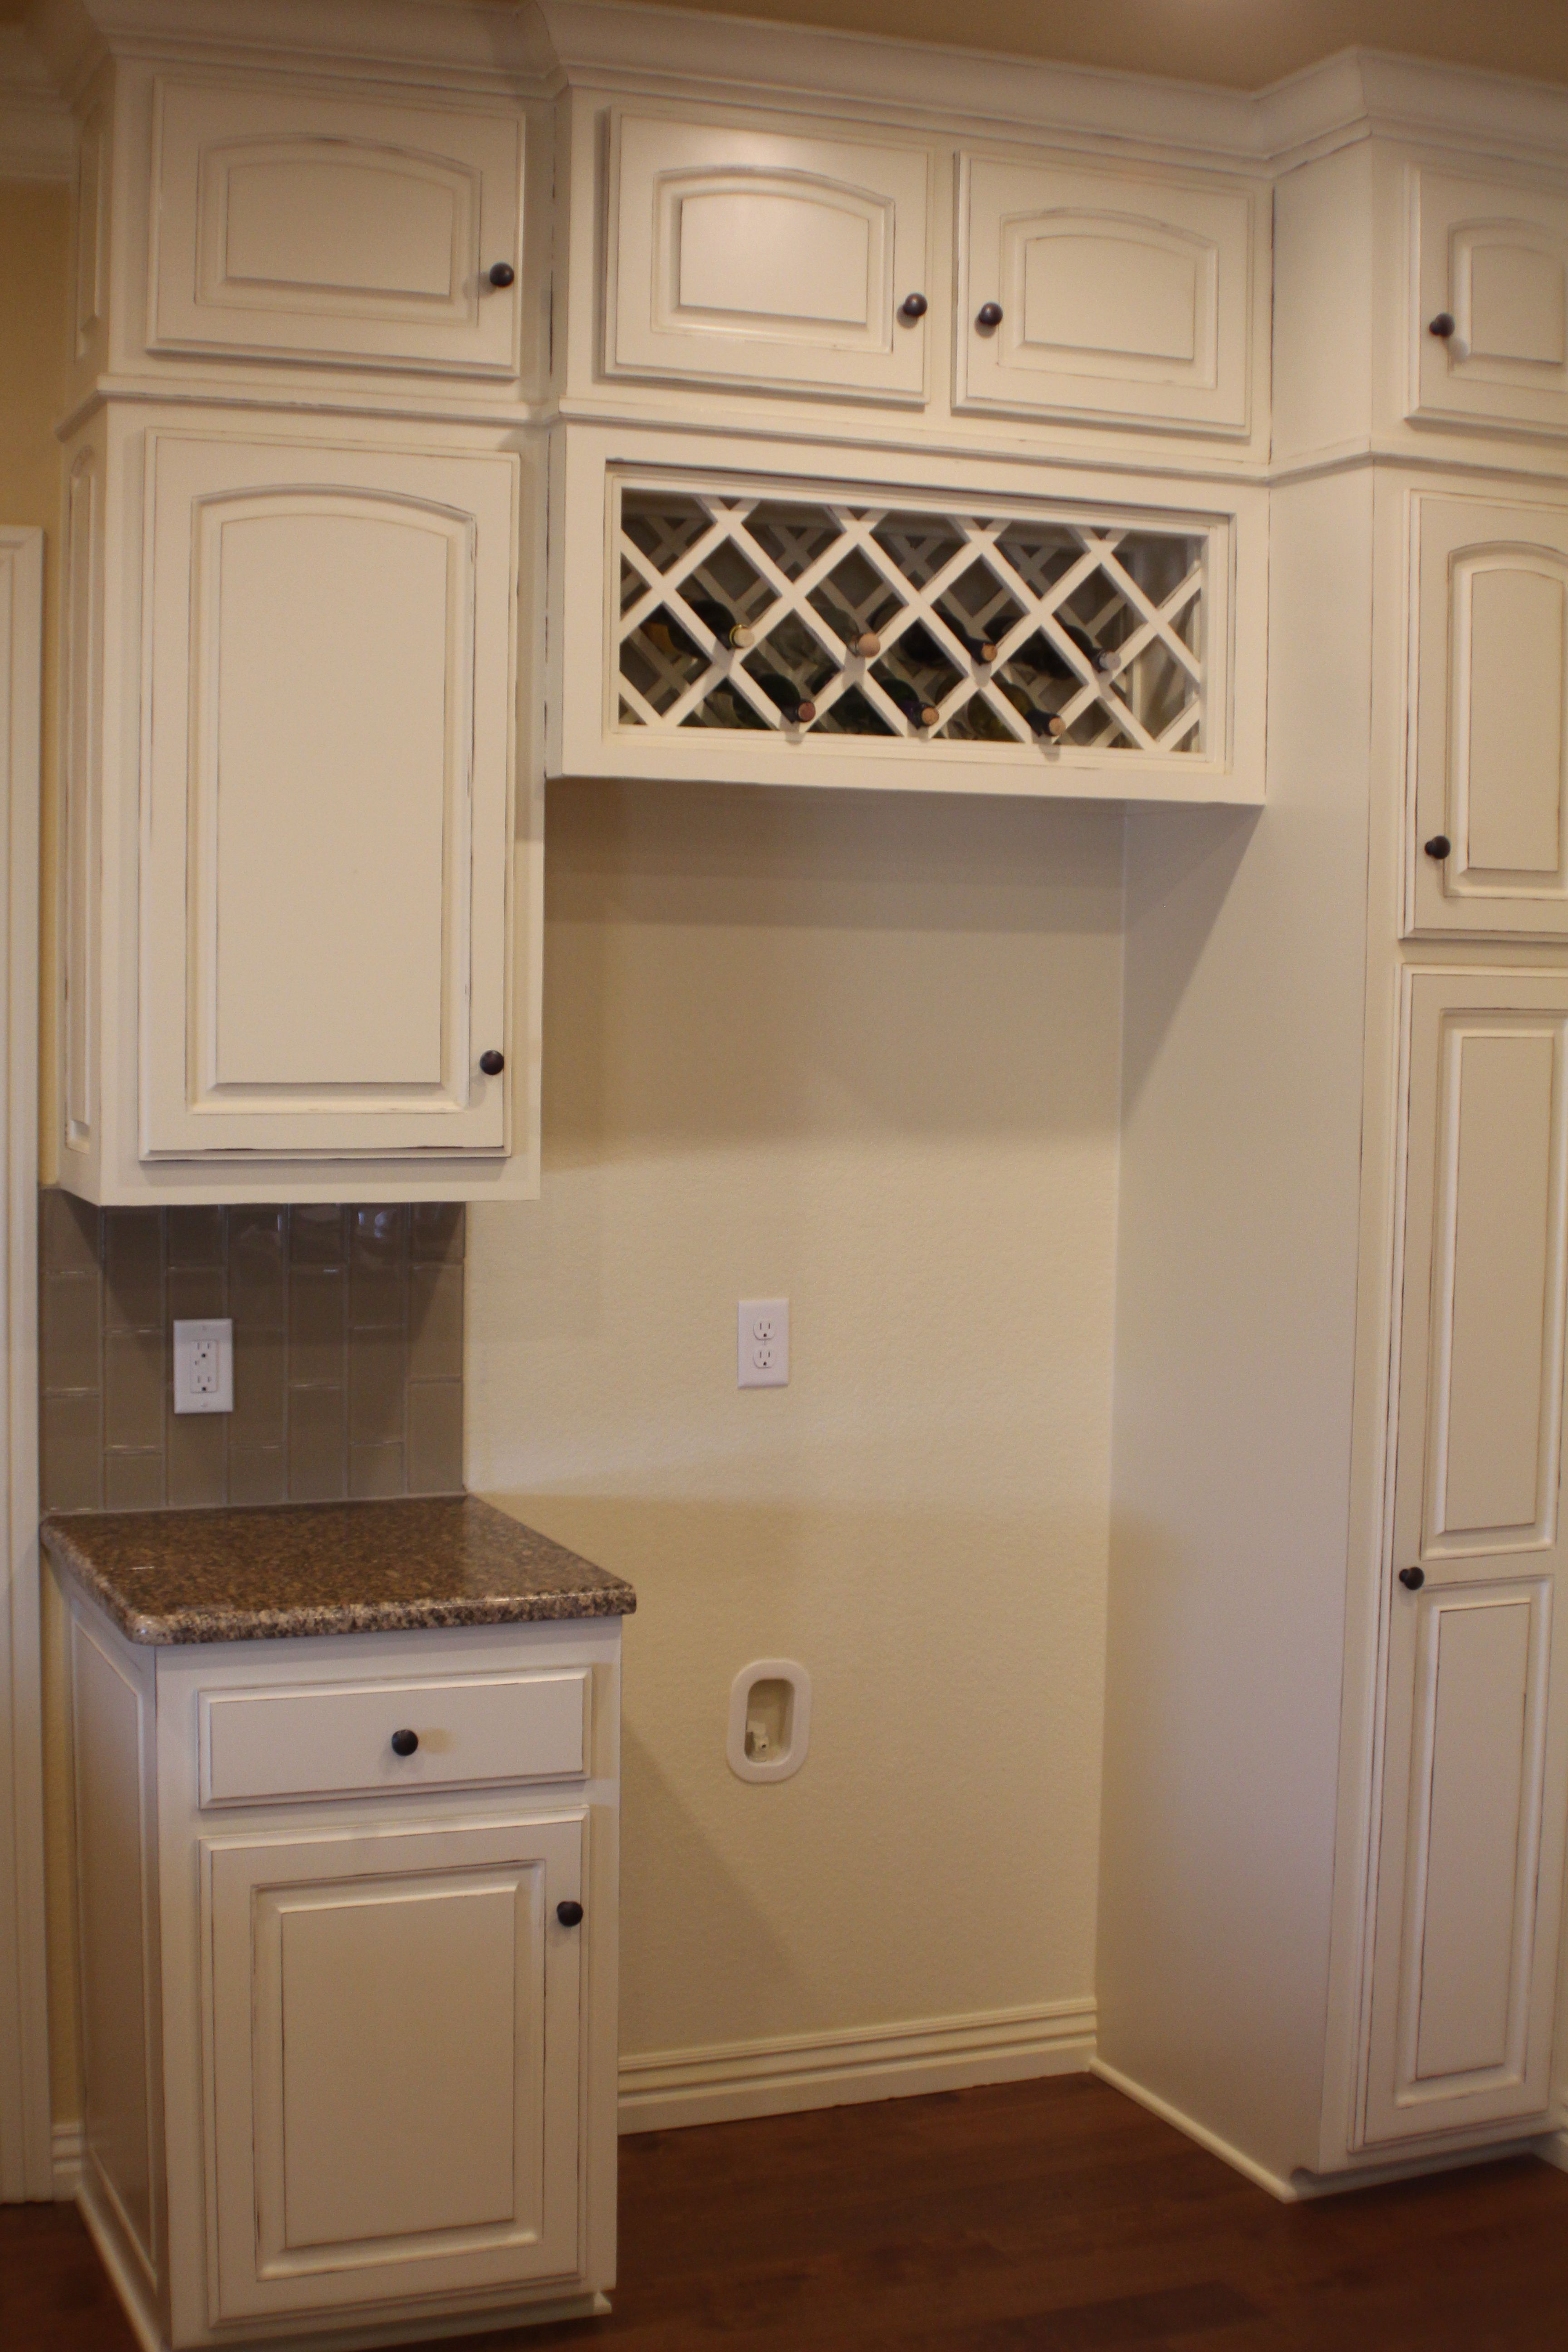 built in wine rack above fridge...still on the fence about